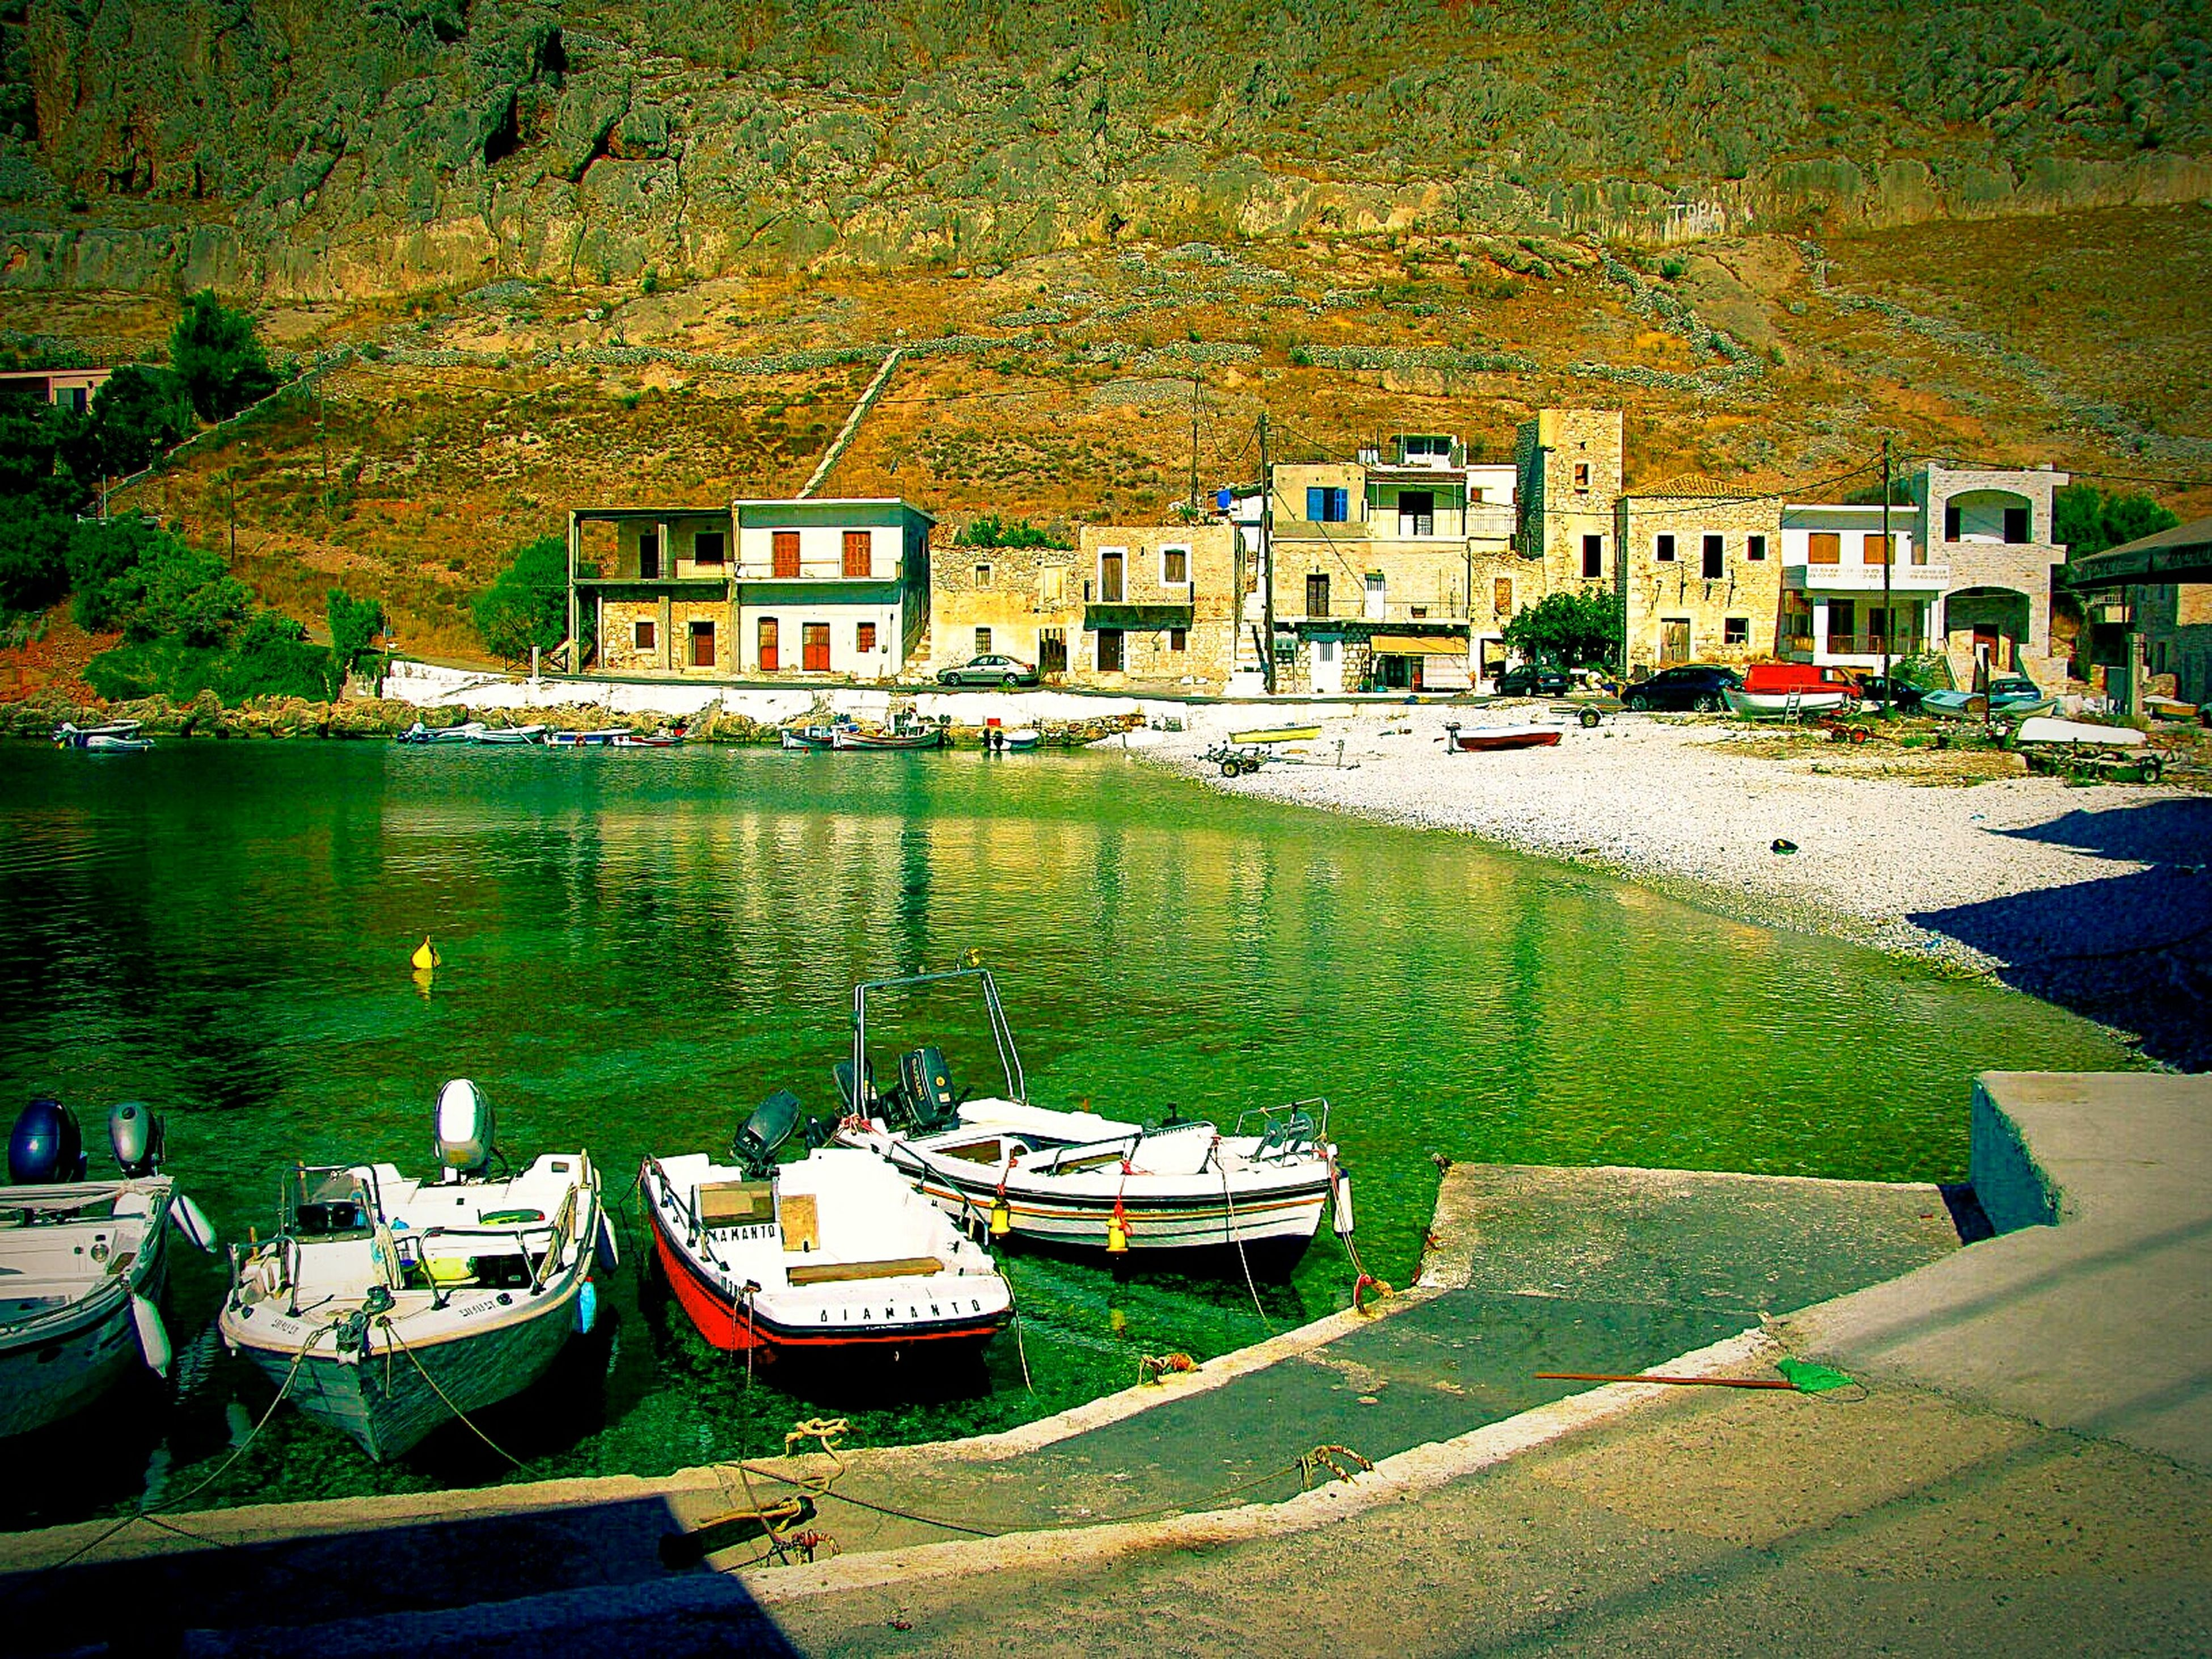 Port Village Beach Beach Photography Life Is A Beach Bay Houses Peace And Quiet Tranquil Scene Tranquility Pebble Beach Boats Trawlers Gerolimenas Mani Lakonias Greece The KIOMI Collection Small Port Pebbles Pebbles And Water Tower Houses Crystal Clear Waters Landscapes With WhiteWall Miles Away